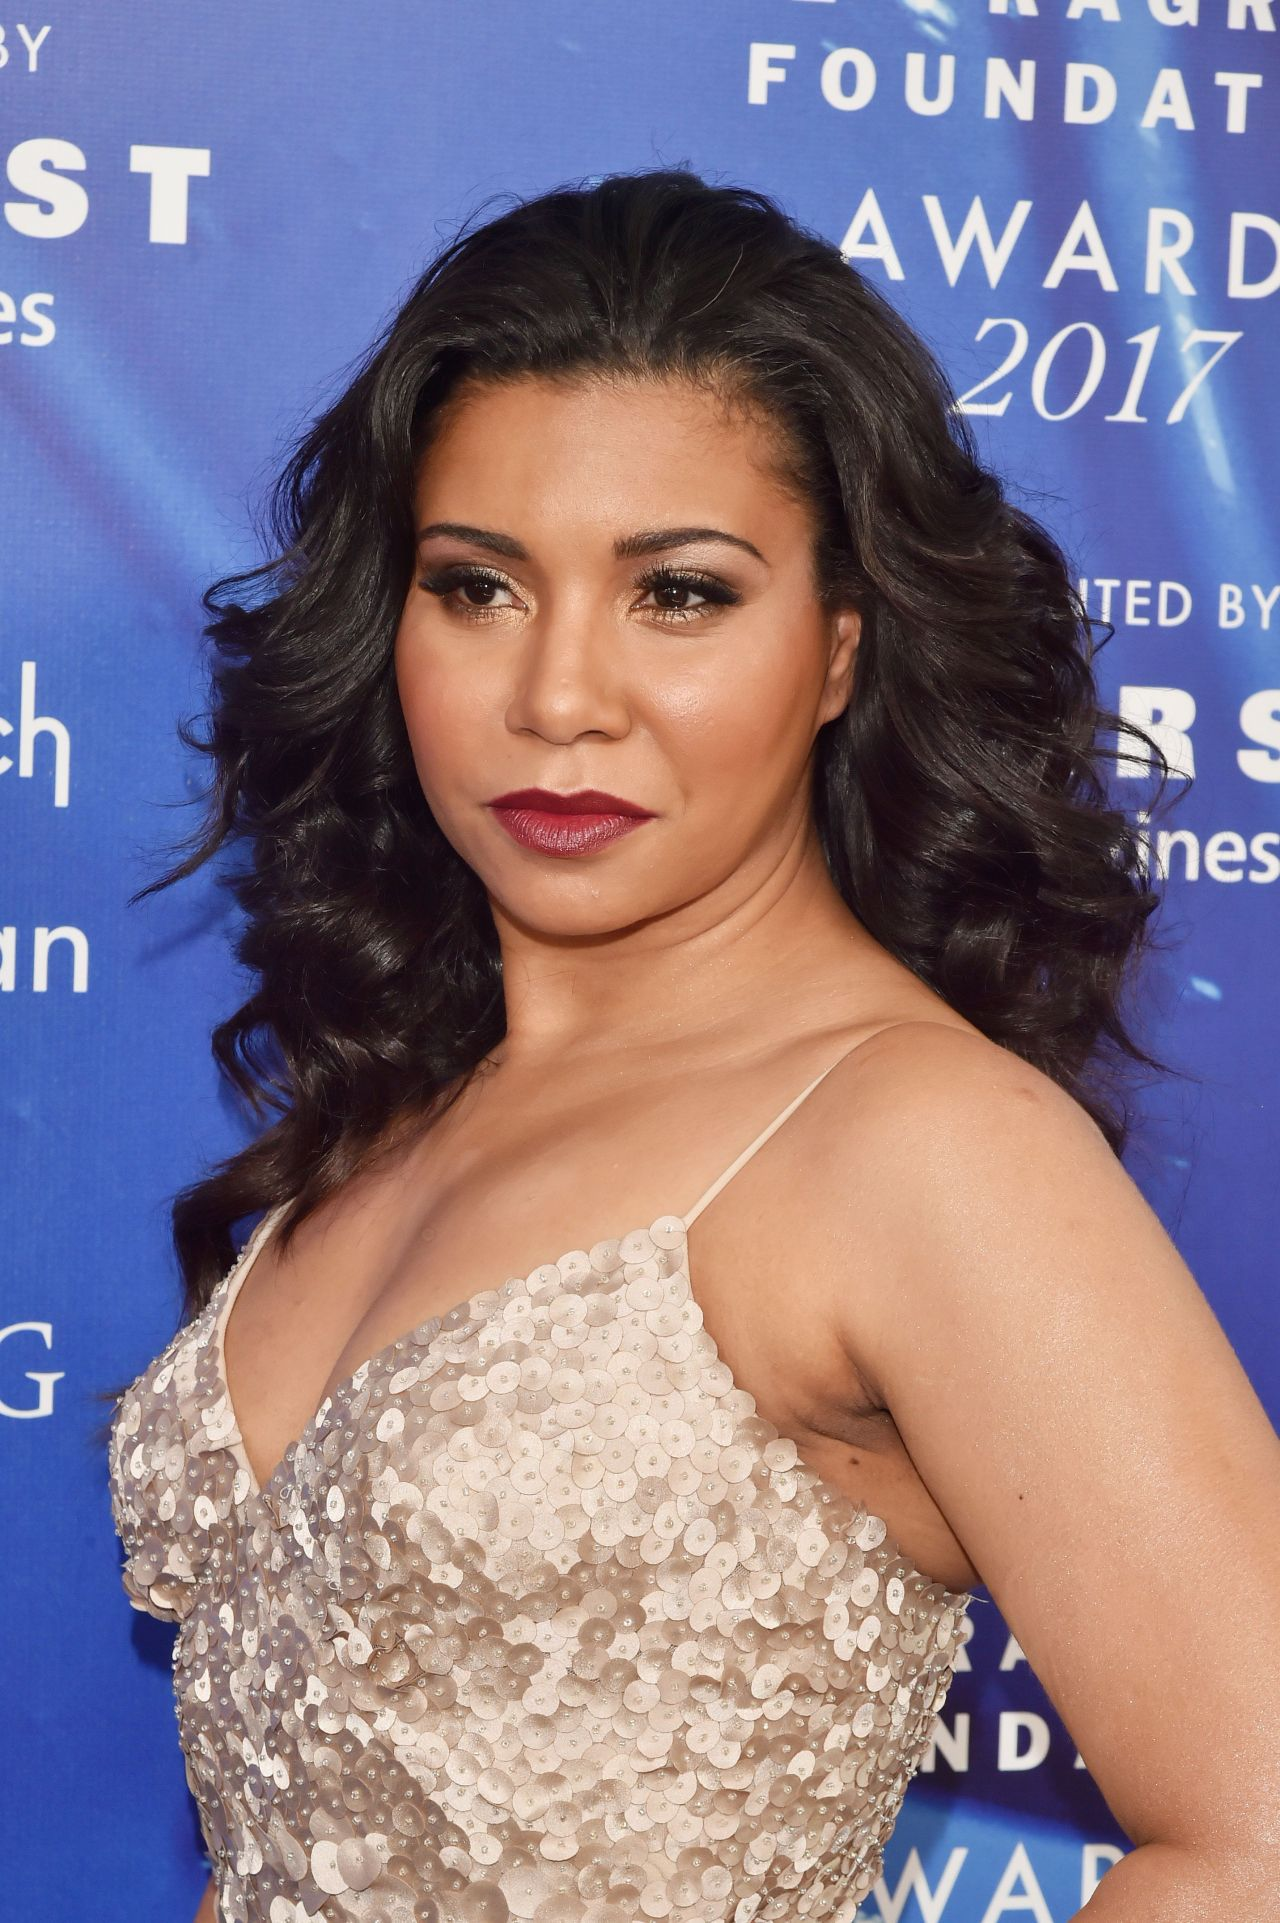 Jessica Pimentel nudes (93 pictures) Topless, 2015, legs